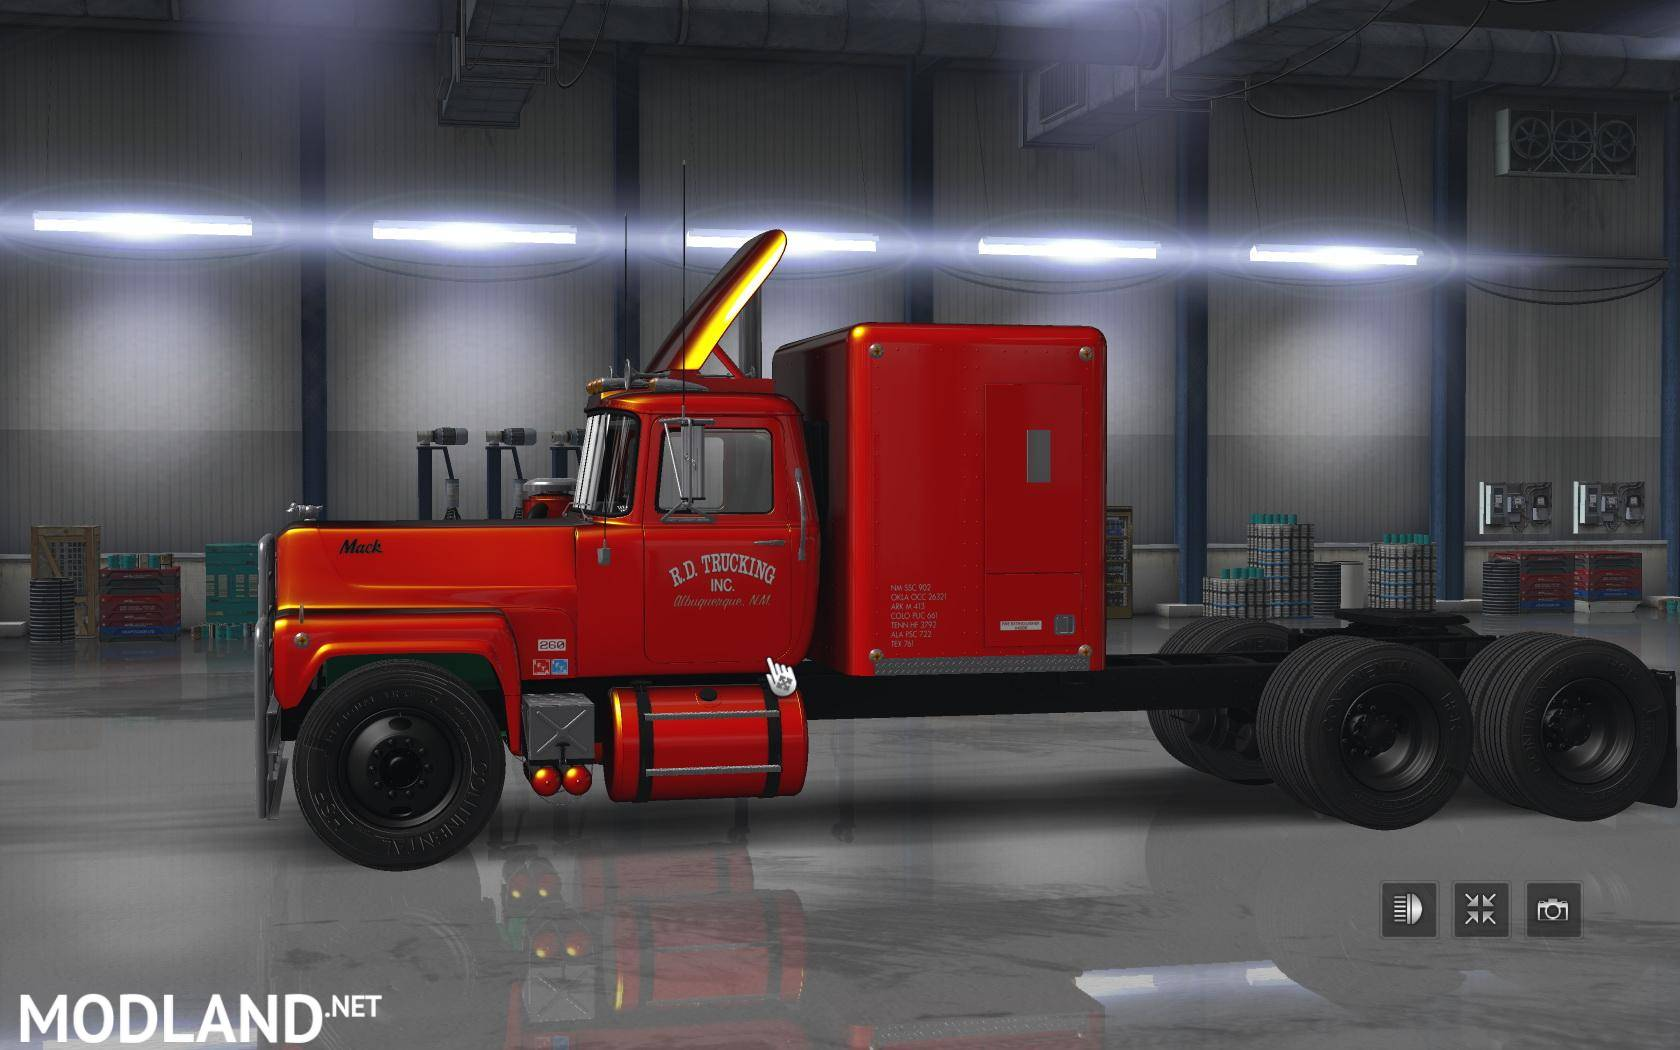 Mack RS 700 & RS 700 Rubber Duck 1.6.x mod for American Truck Simulator, ATS